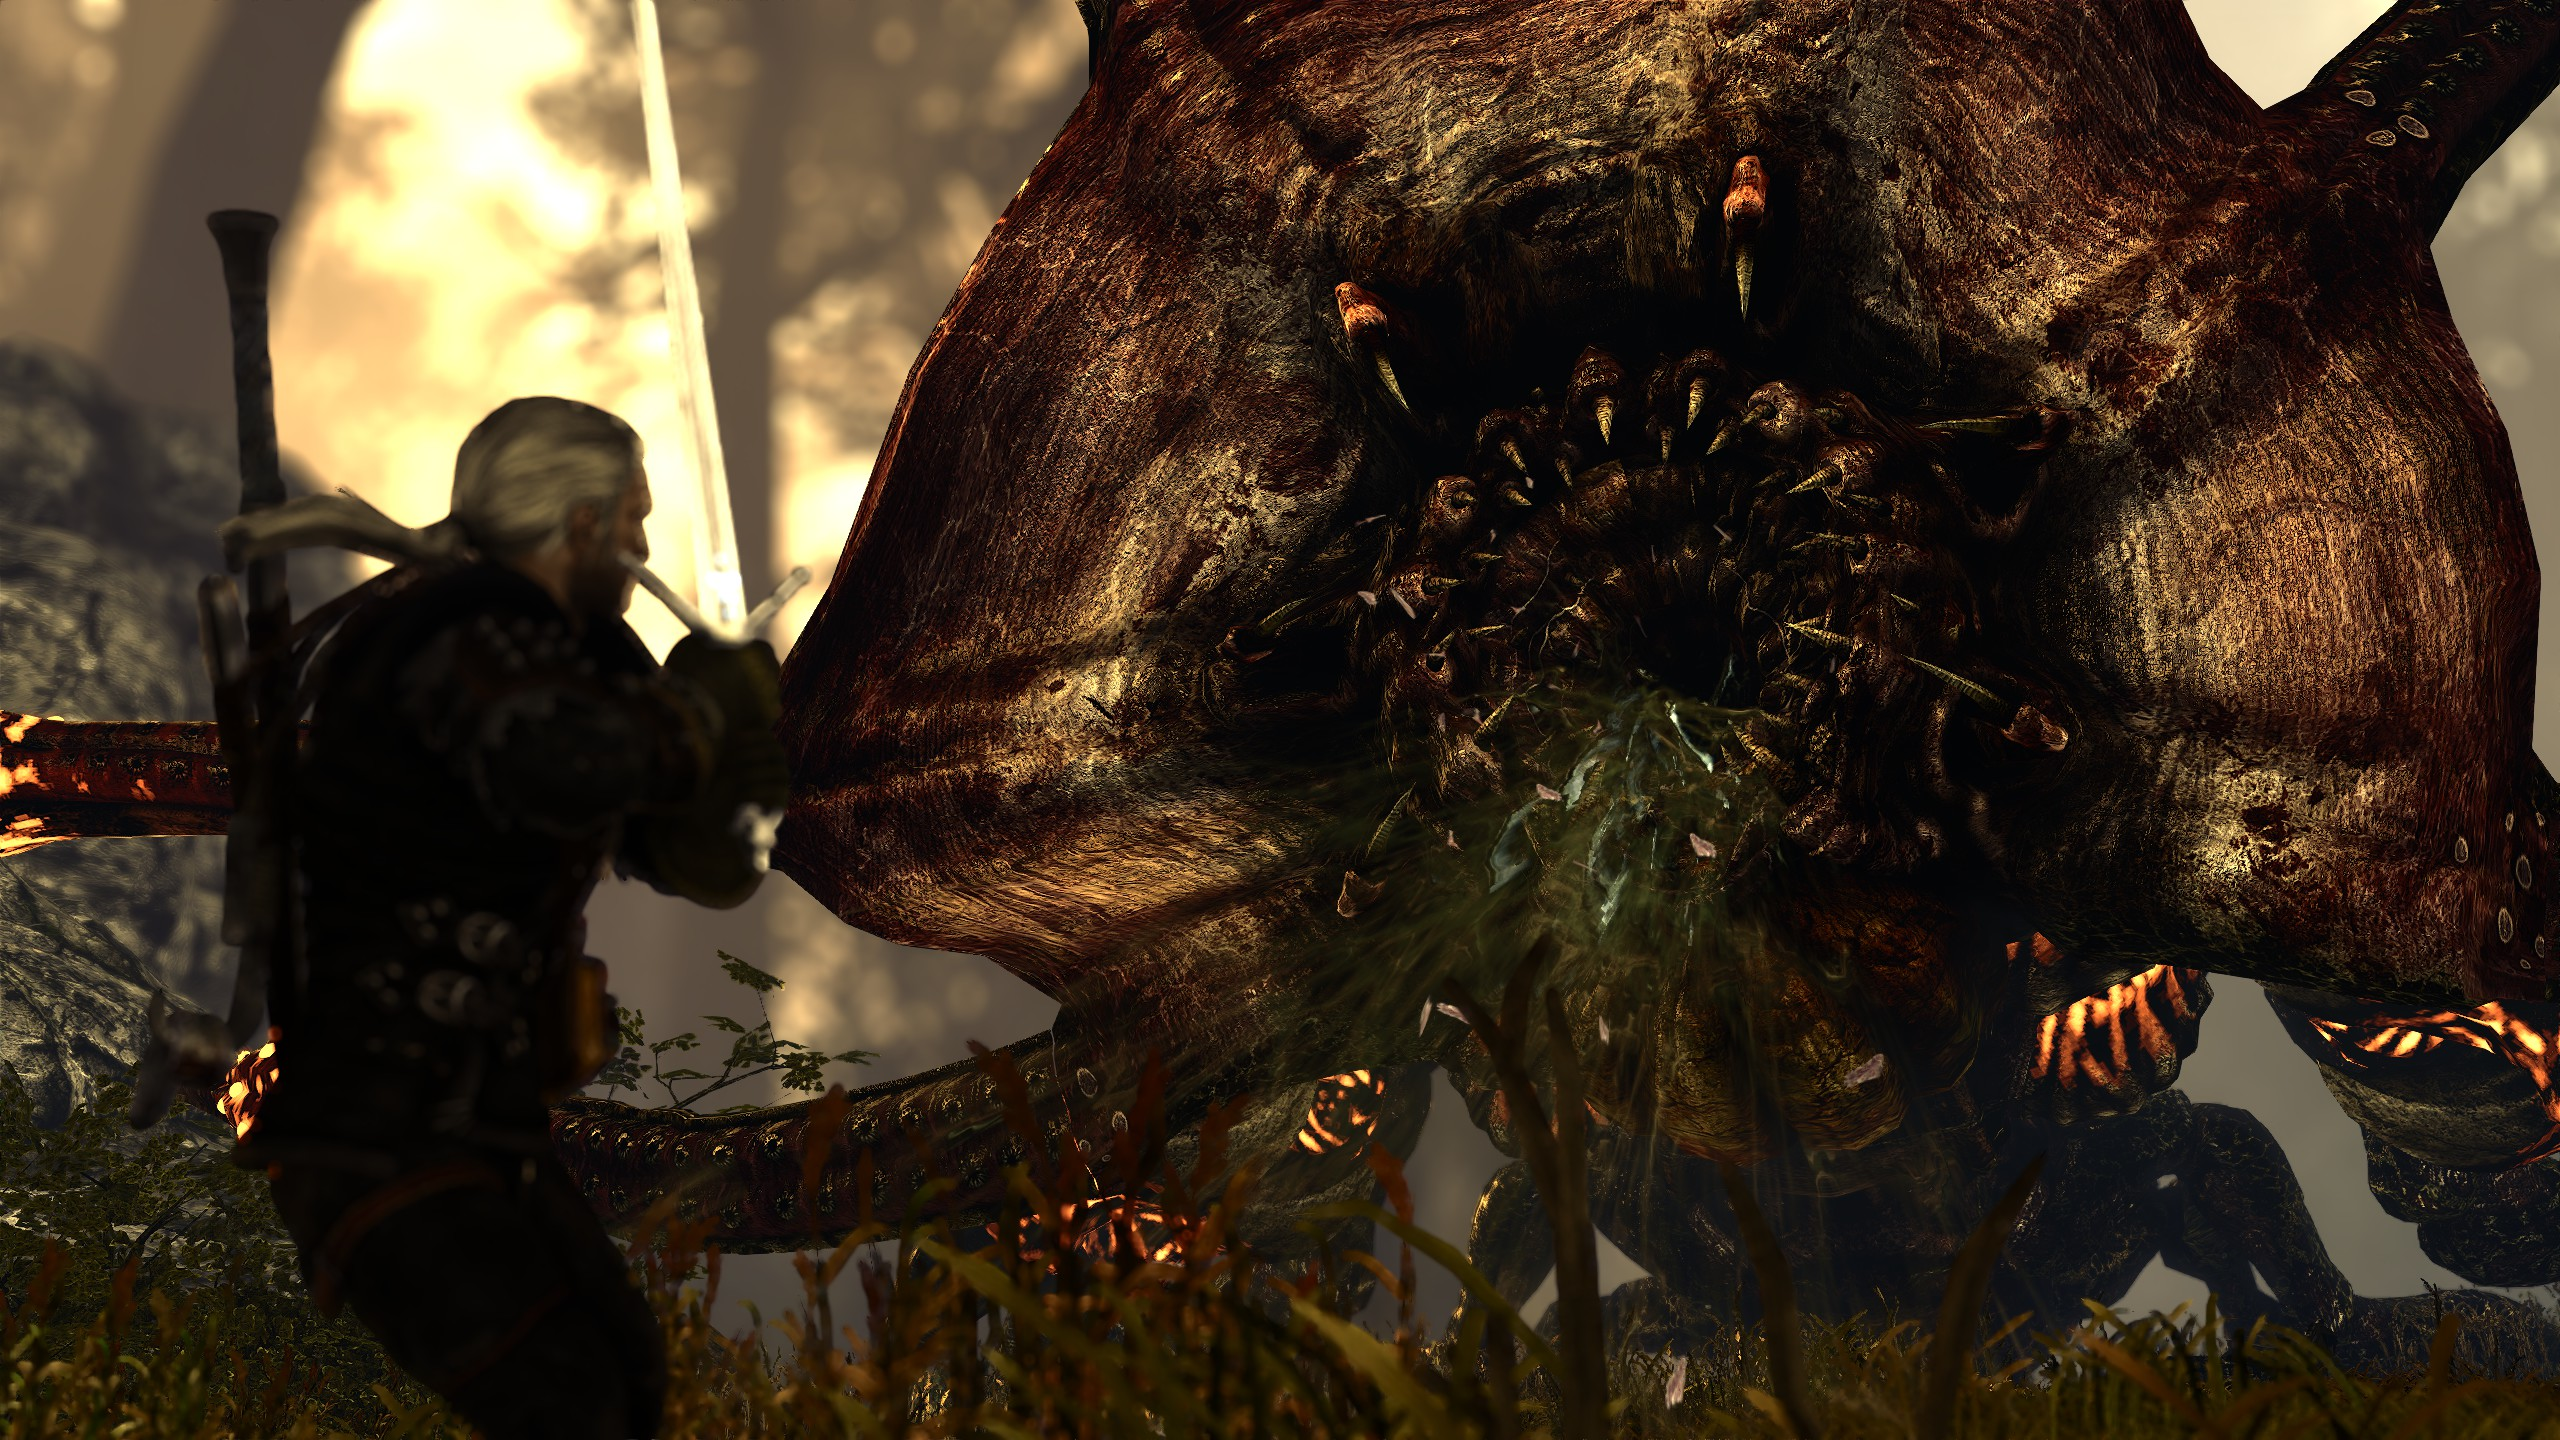 20180711230227_1.jpg - The Witcher 2: Assassins of Kings